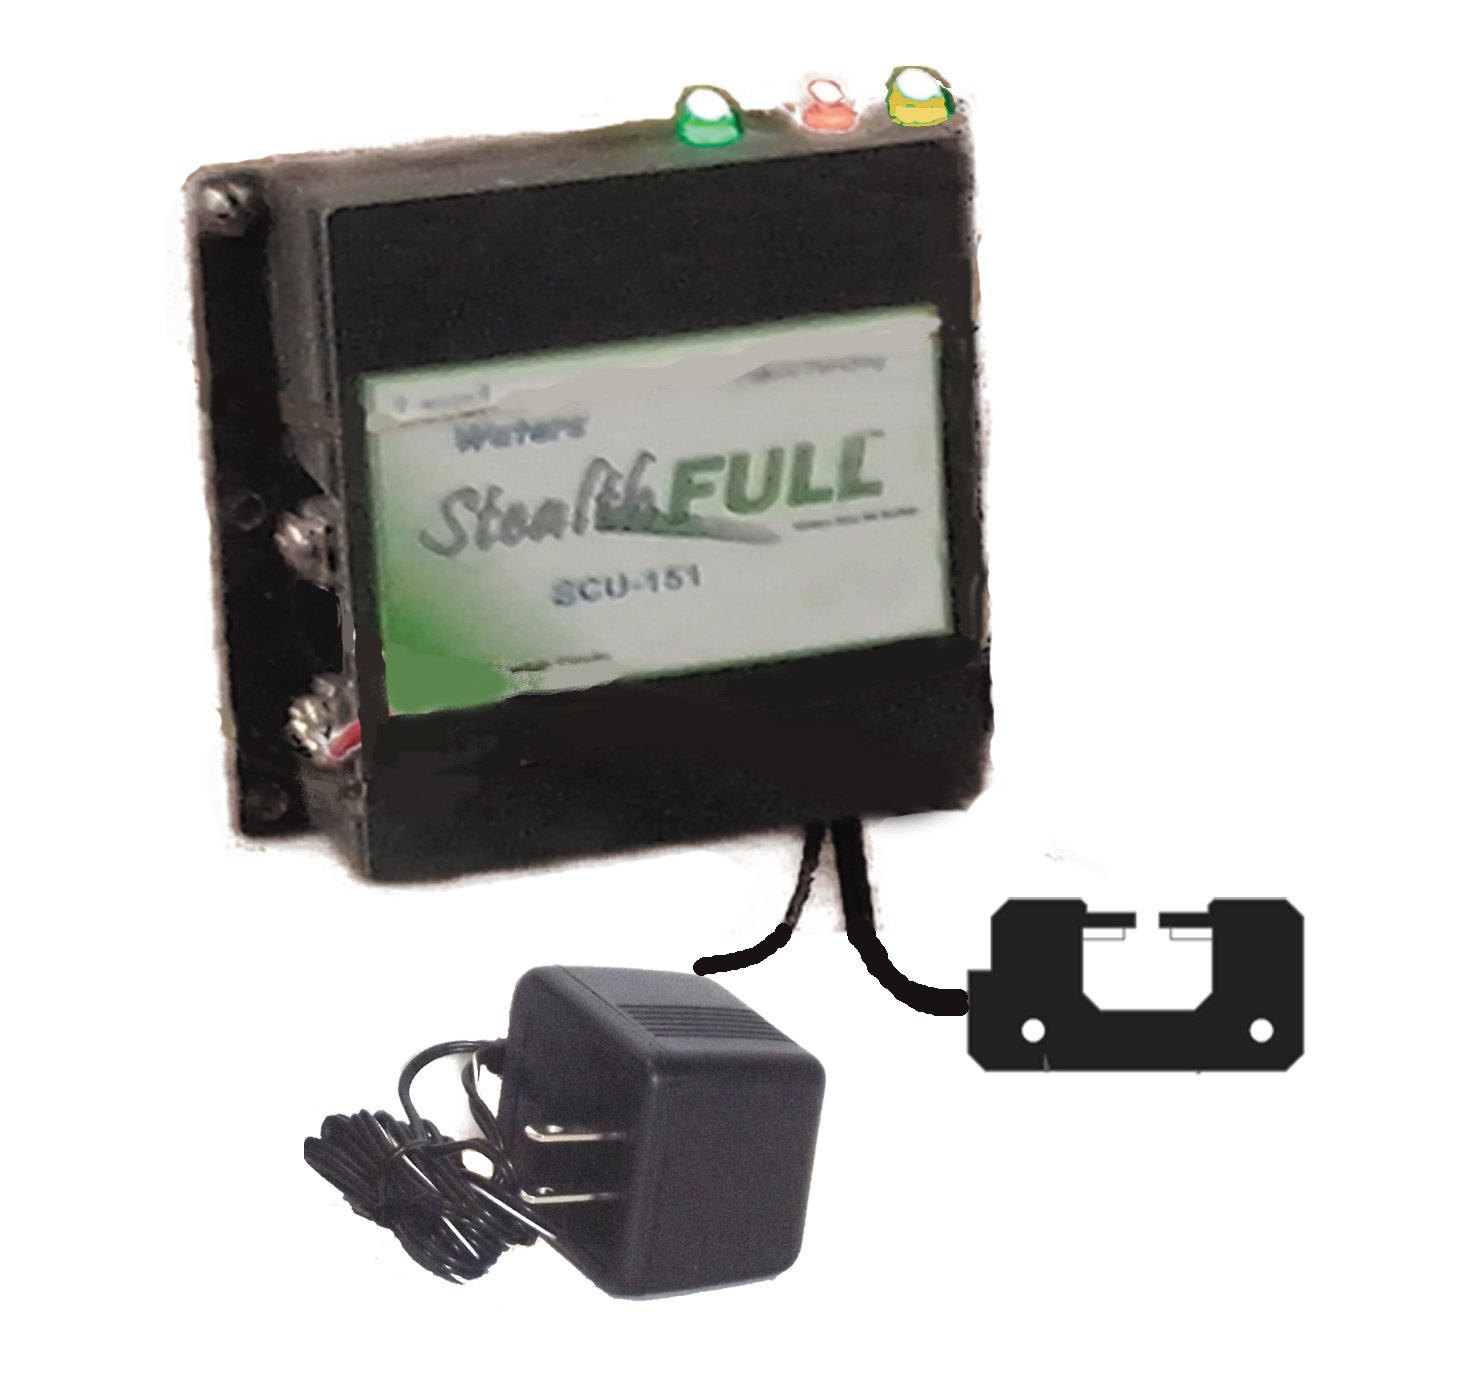 Level Waters StealthFULL Hidden Sensor Autofill for Fountains, Pools and More